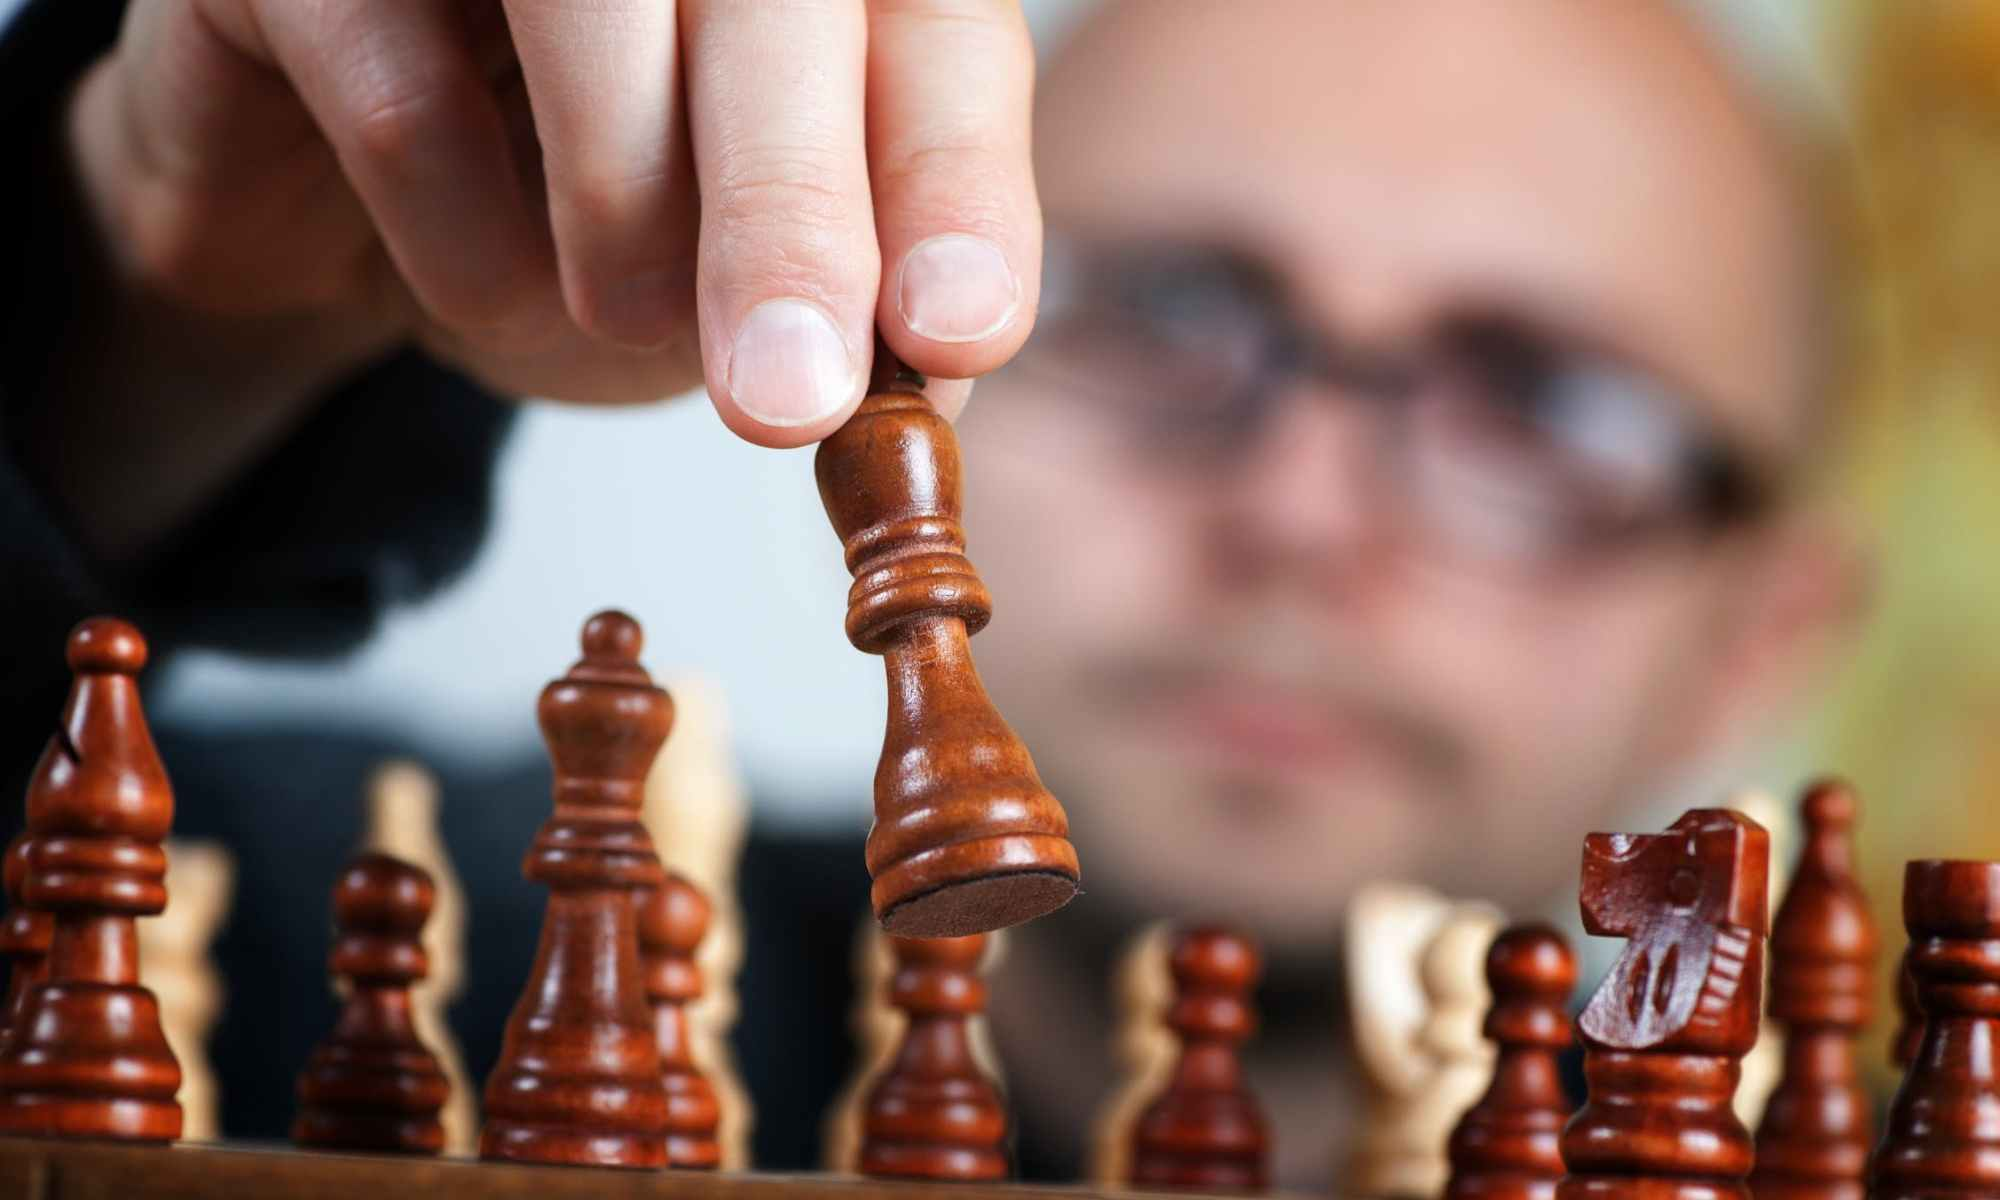 Shallow focus photography of white bald man holding brown chess piece over chess board